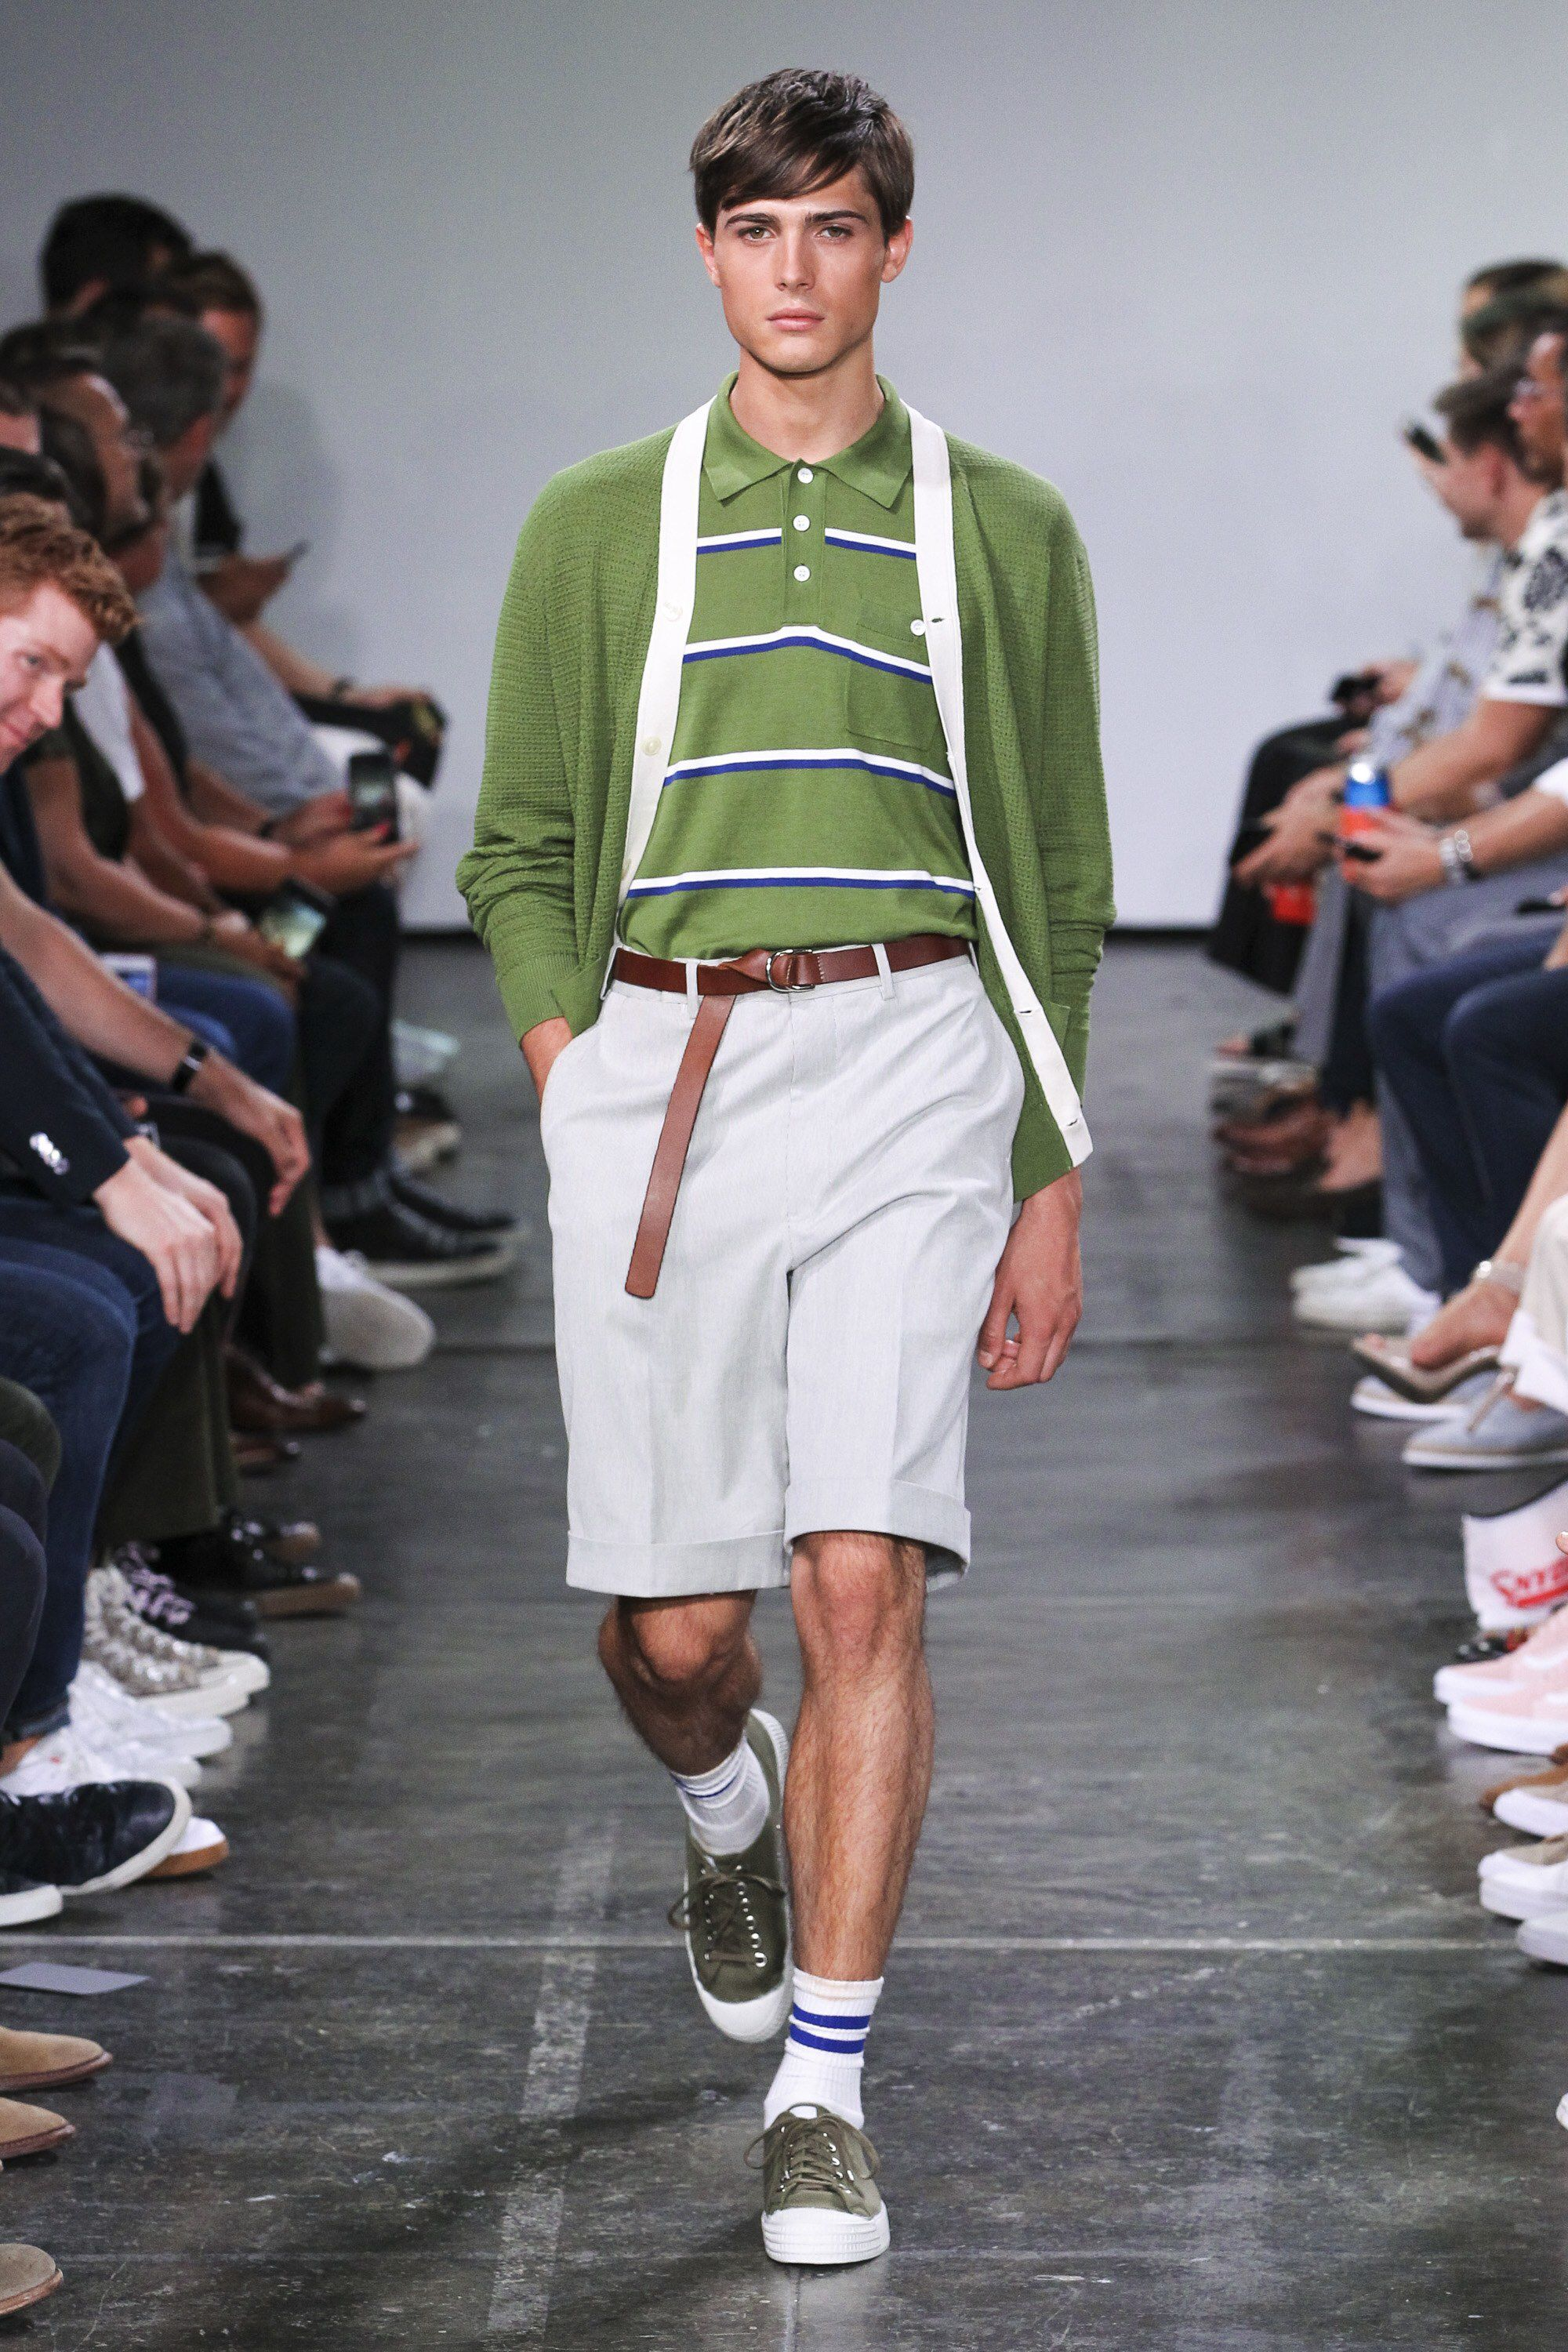 fdce7a5be068 Todd Snyder Spring 2019 Menswear Fashion Show   HEART EYES ...